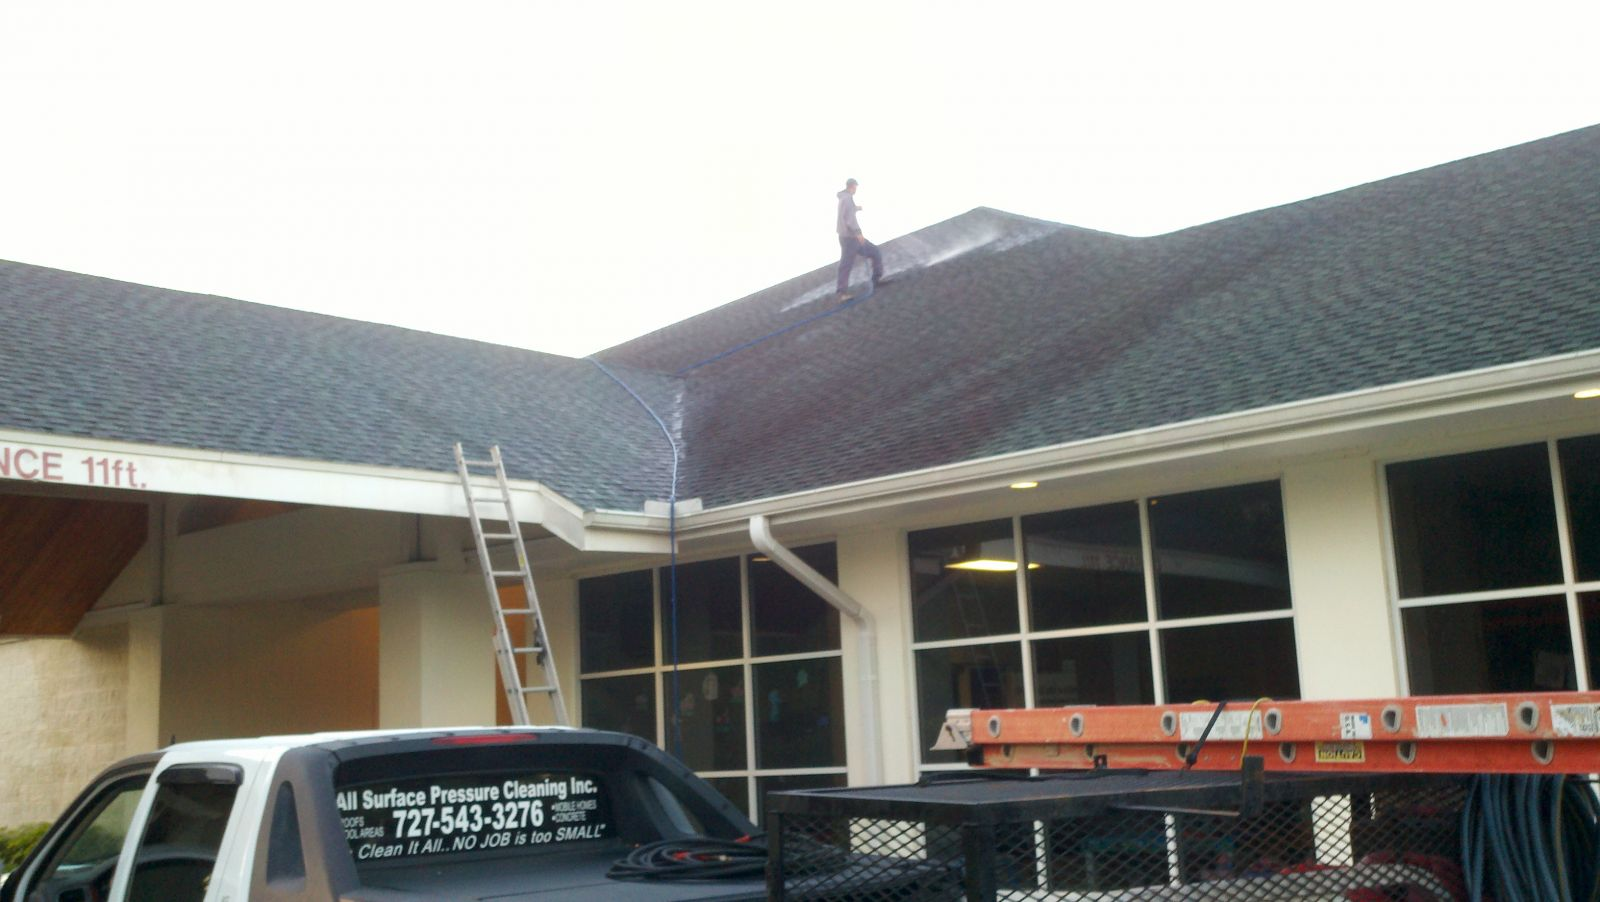 Roof Cleaning & Pressure Washing by All Surface 727-543-3276